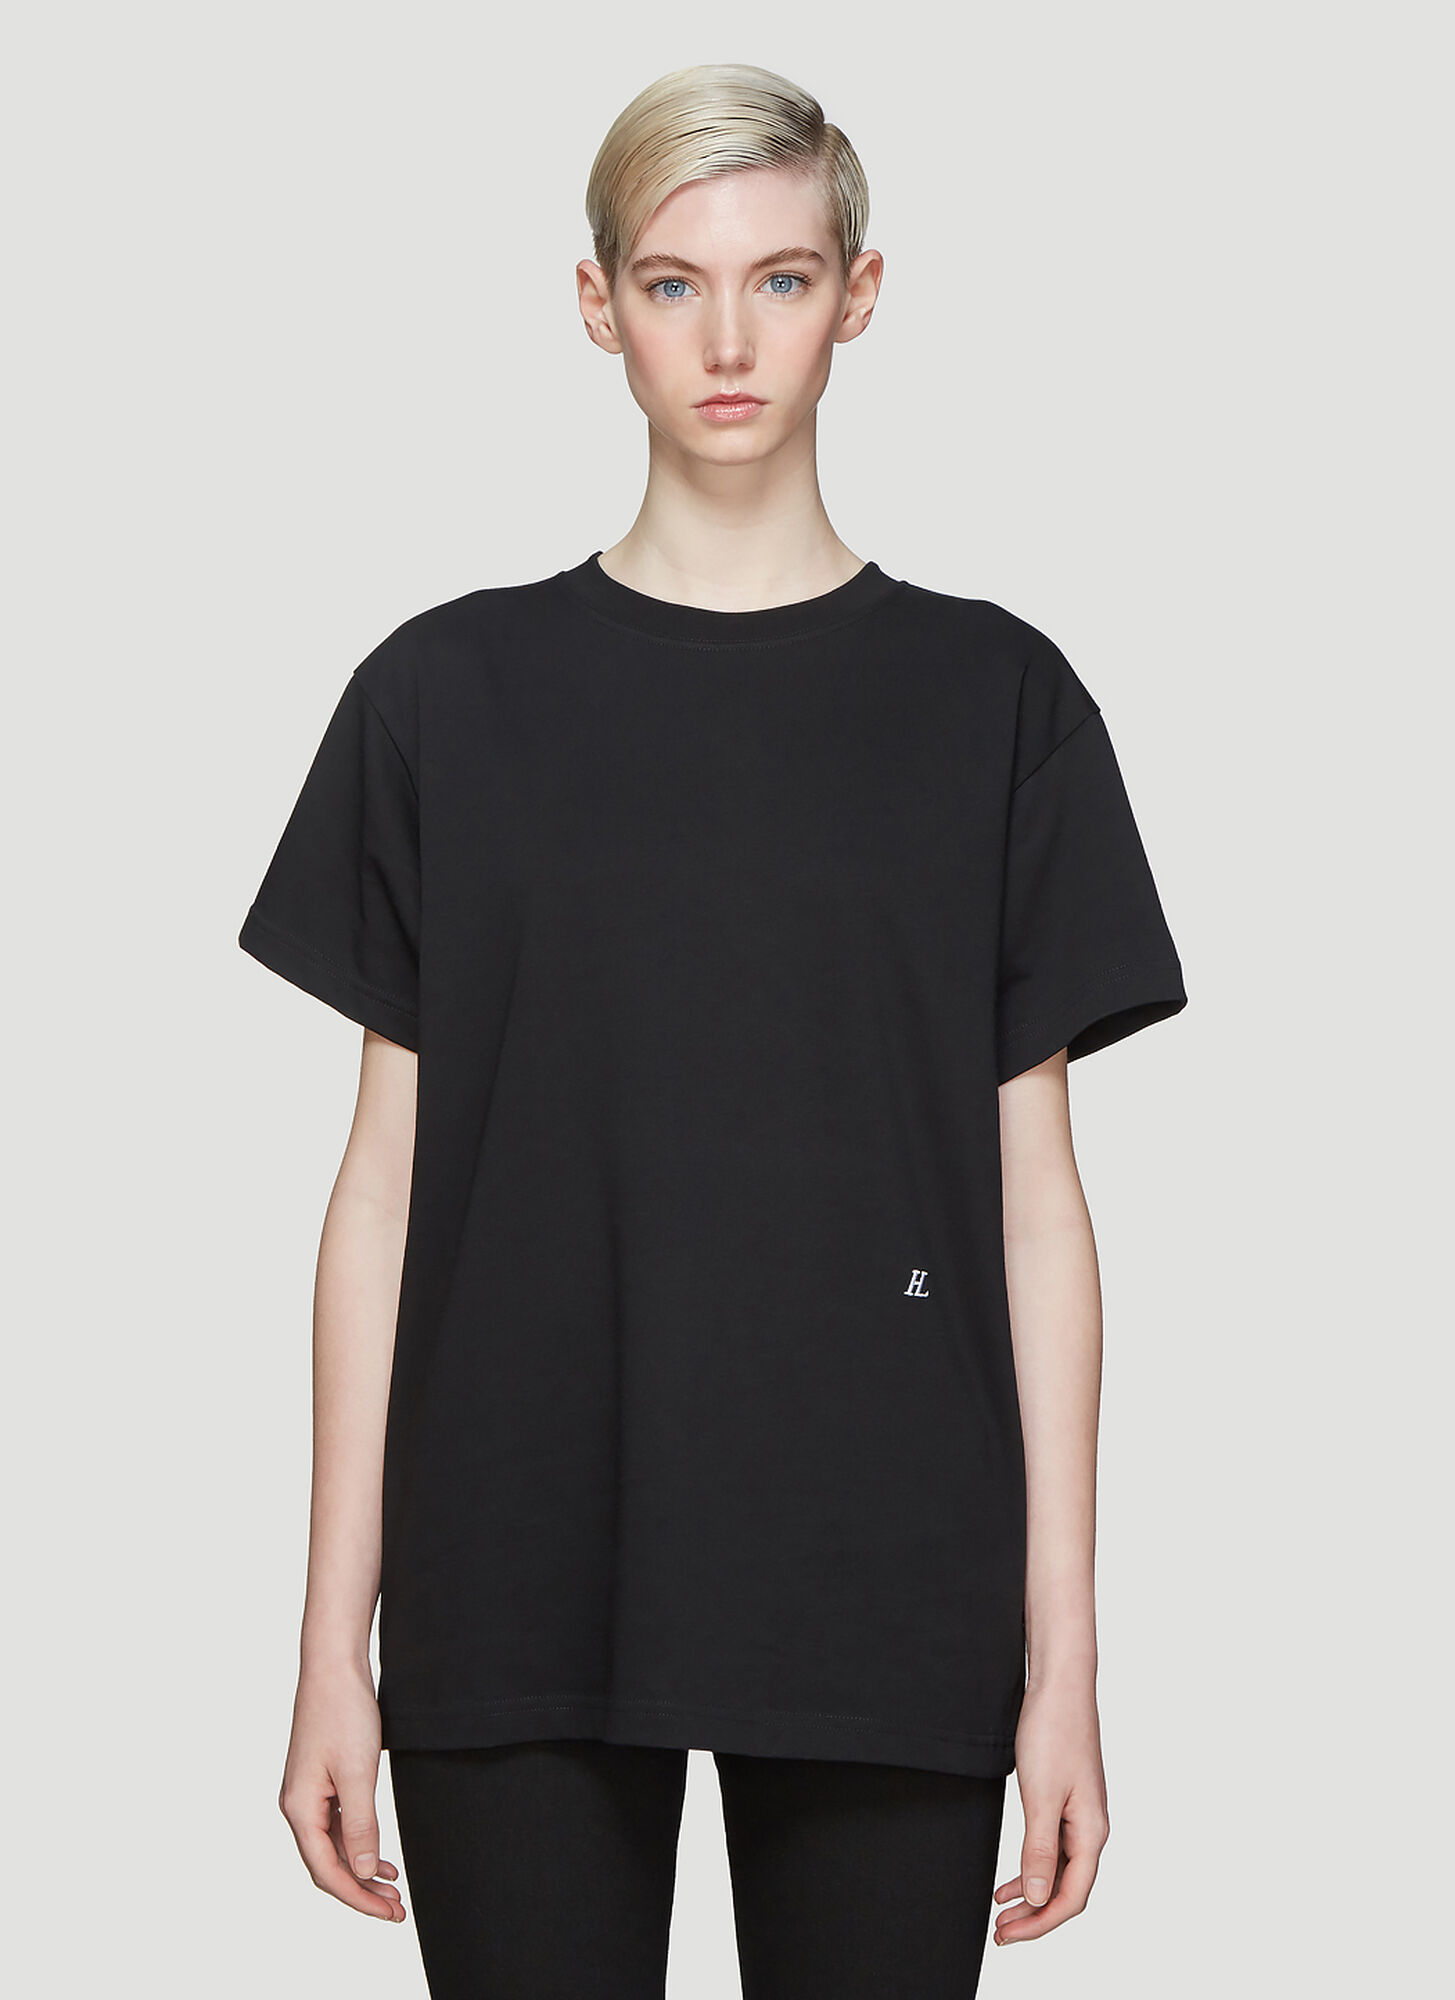 Helmut Lang Embroidered Logo T-Shirt in Black